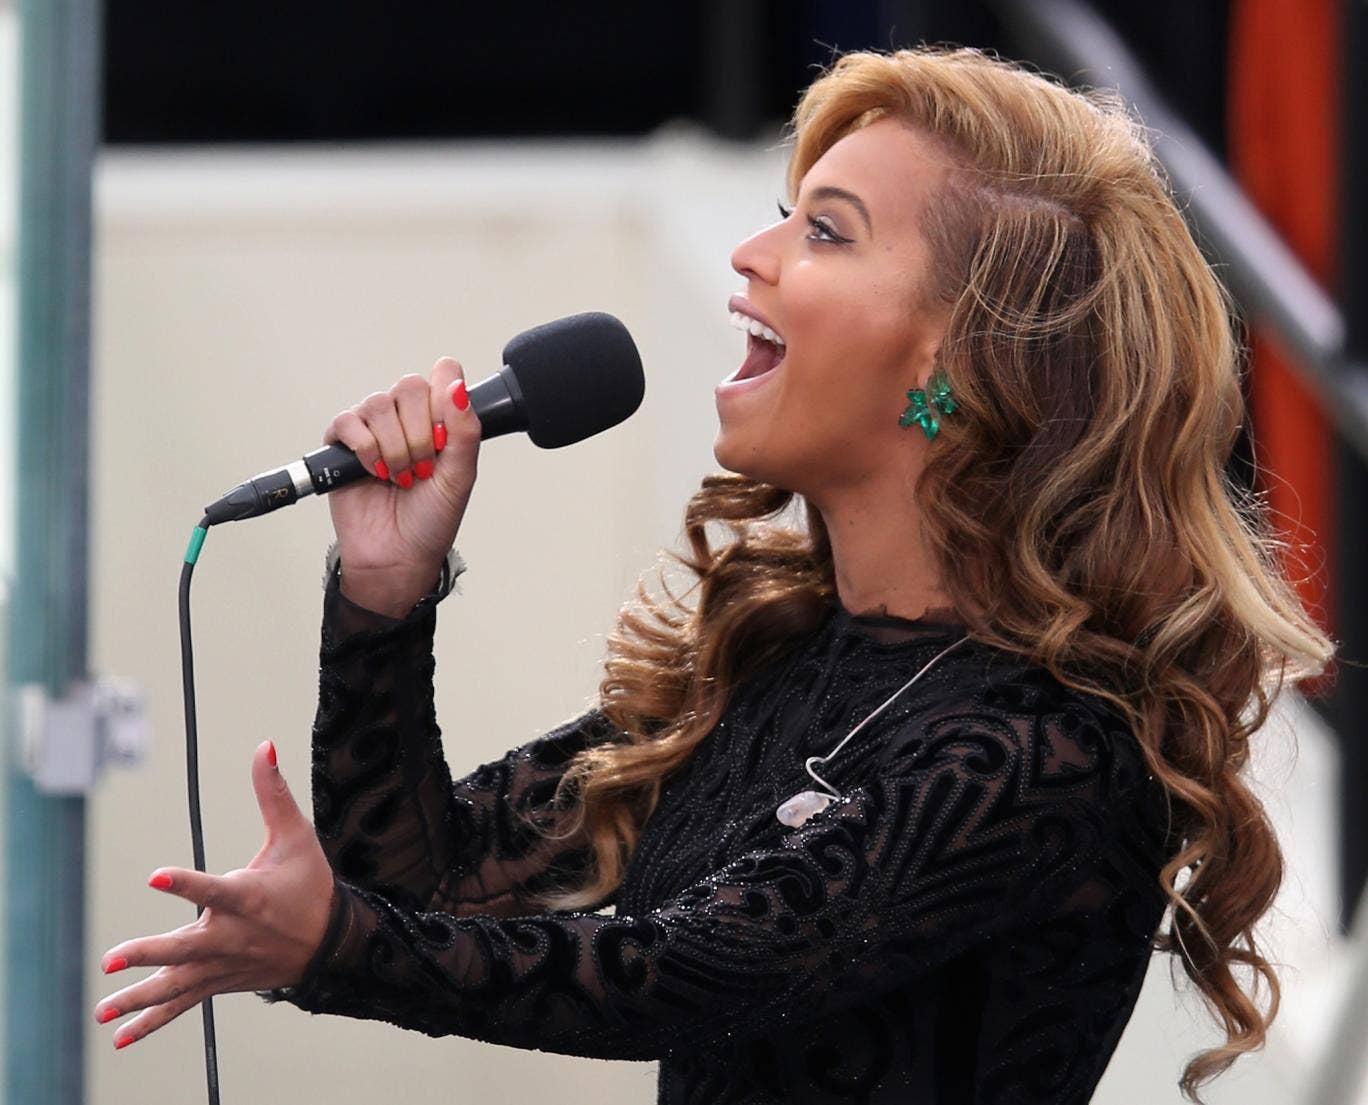 Did Beyonce lip-synch at the President's inauguration